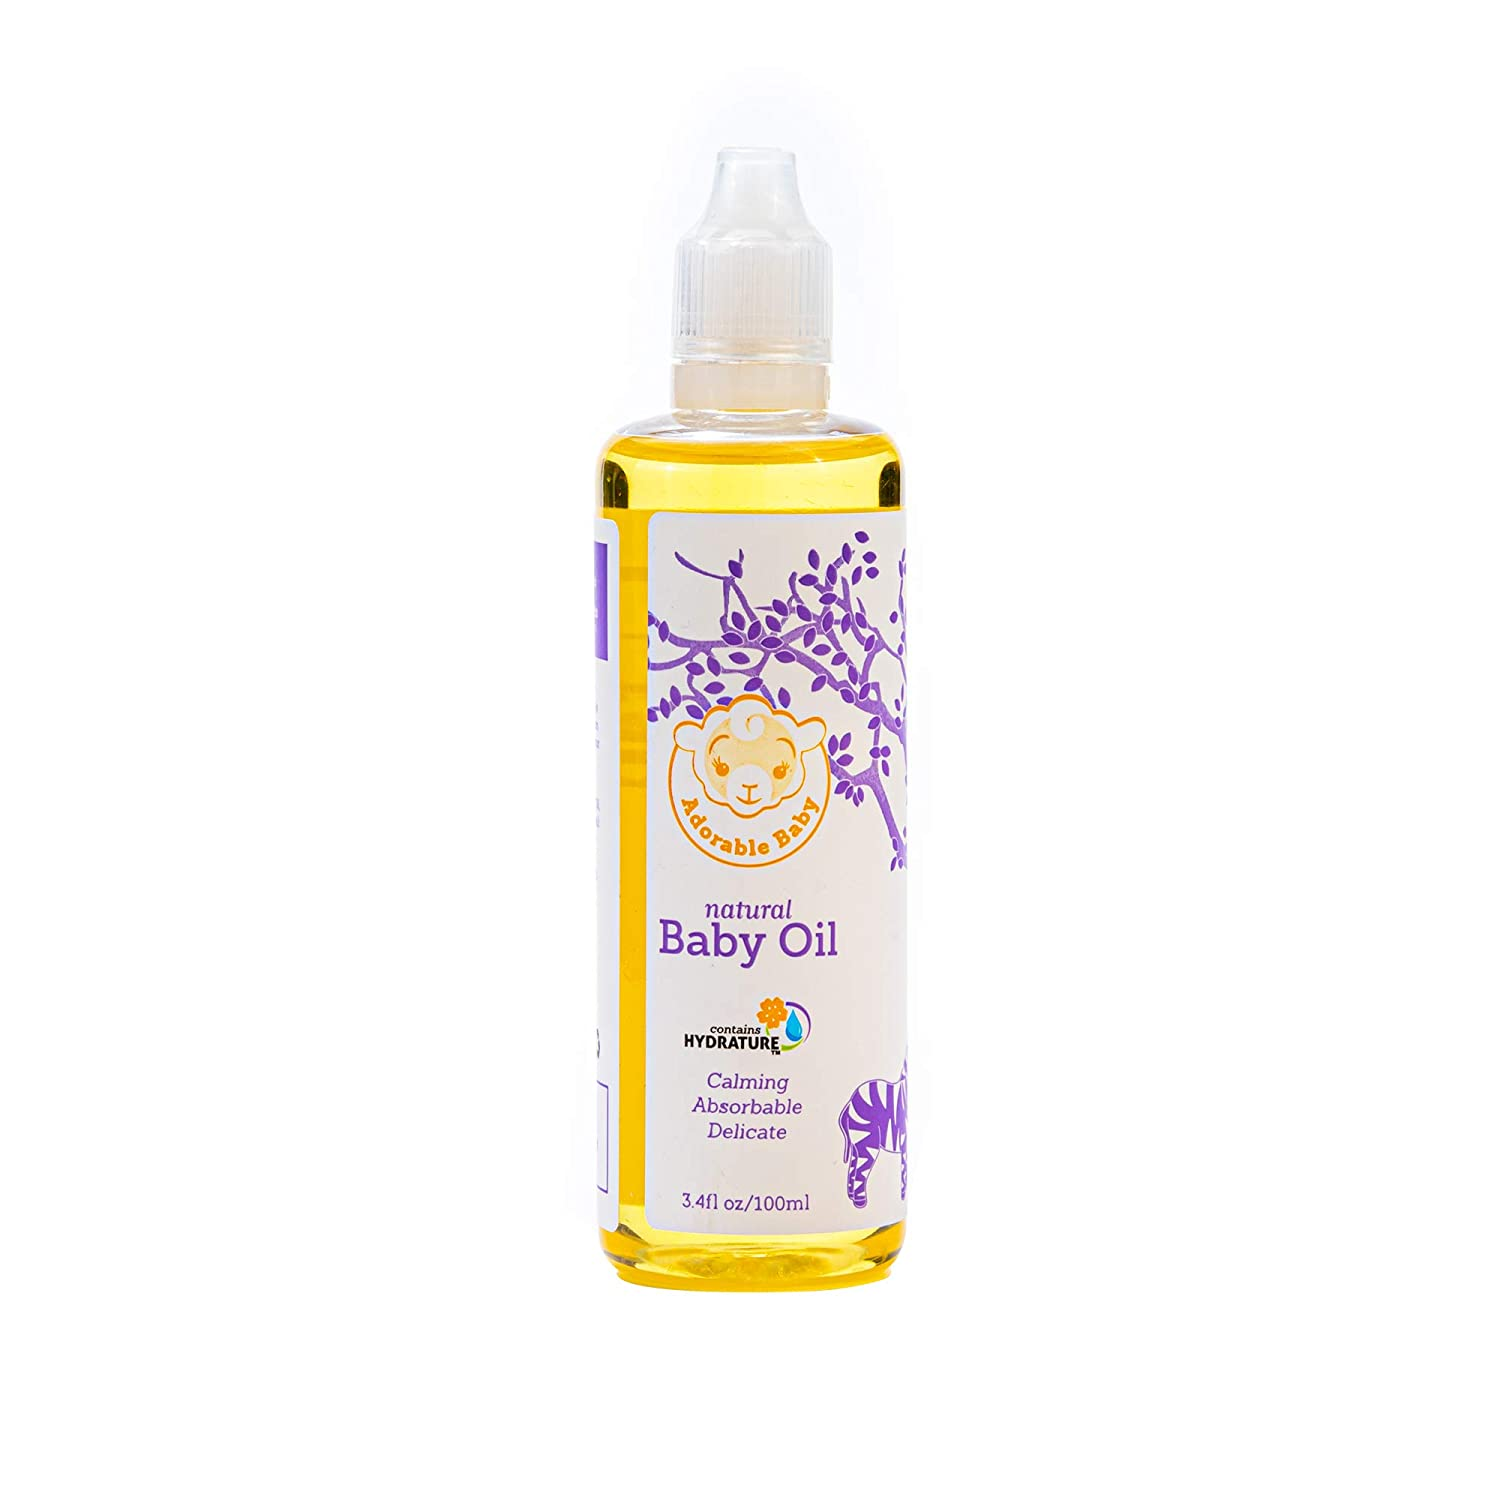 Adorable Baby Natural Baby Oil, EWG VERIFIED for Safety, Contains Hydrature for Added Moisturization, 3.4 oz.